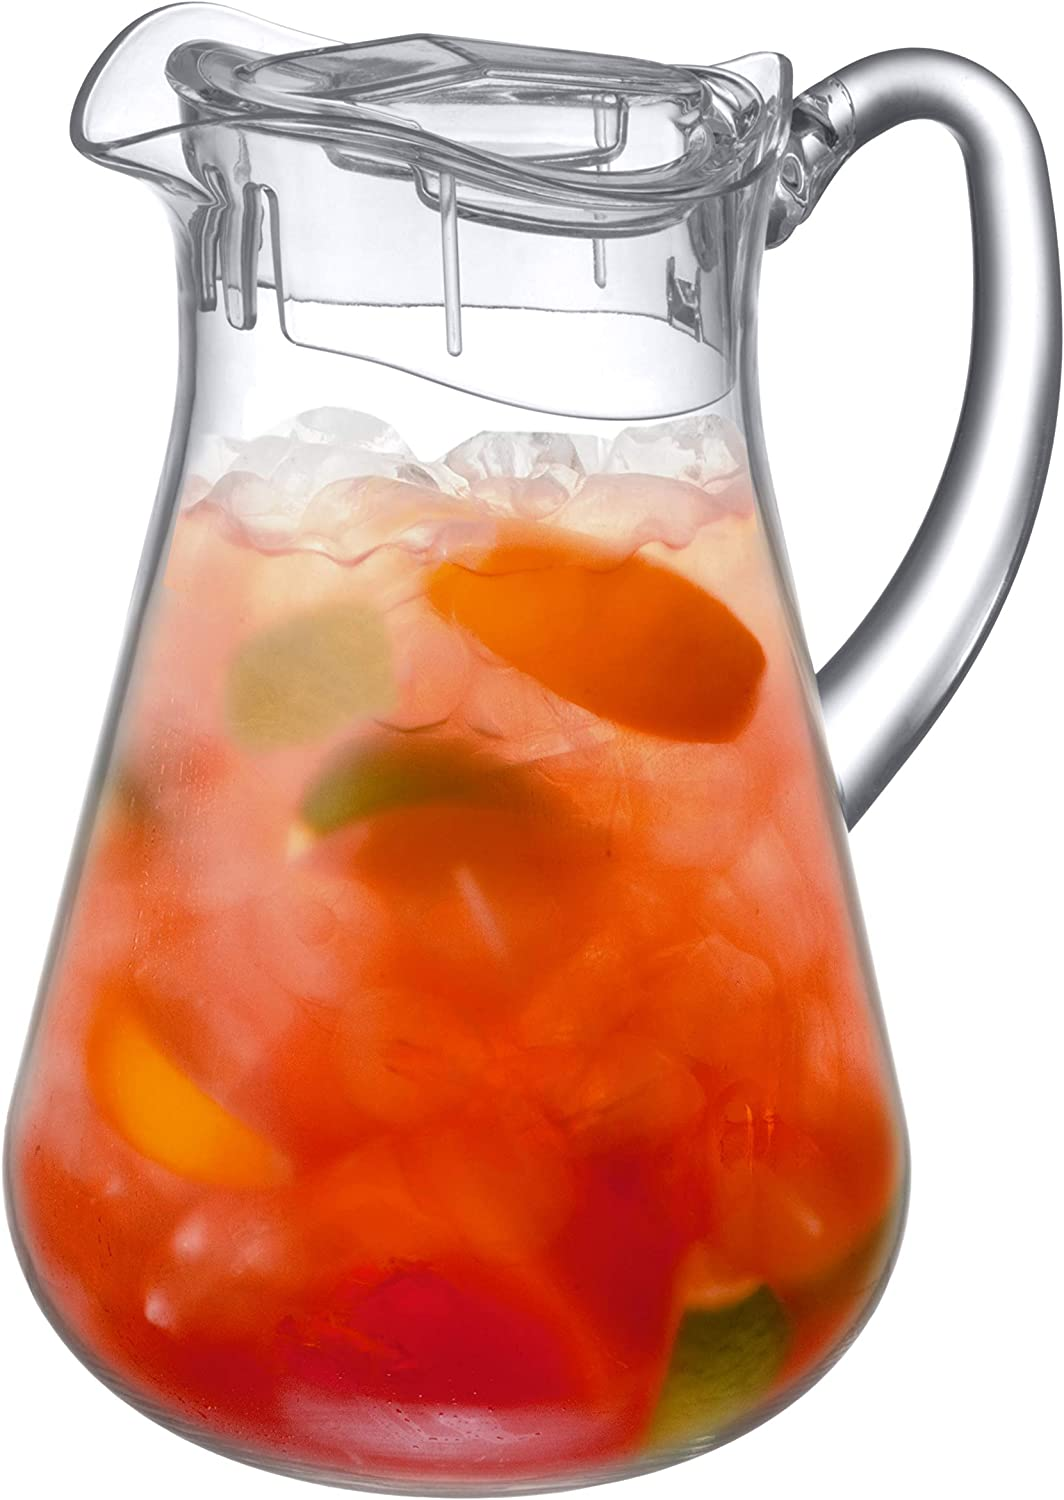 Amazing Abby Droply - Acrylic Pitcher (72 oz, 2.2 qt), BPA-Free and Shatter-Proof, Great for Iced Tea, Sangria, Lemonade, and More